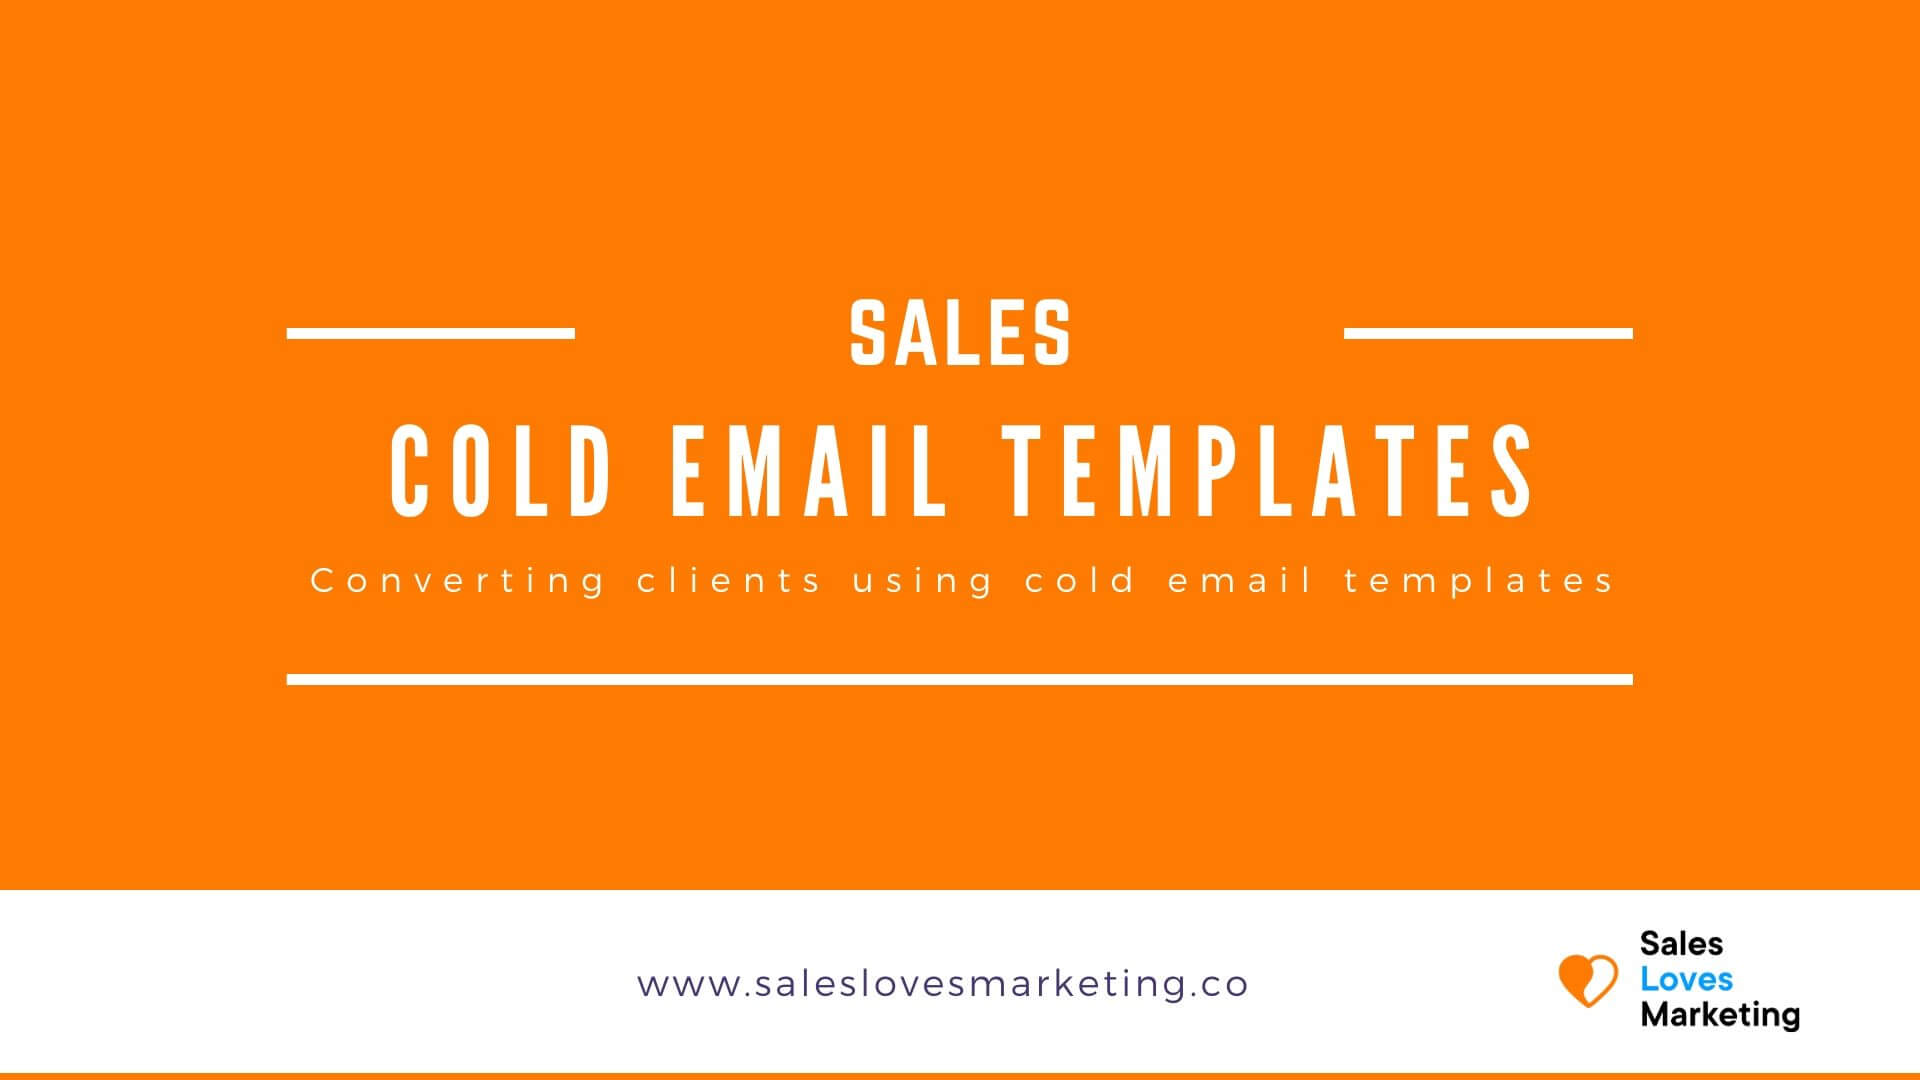 Start converting prospects by using cold emails, get free cold email templates